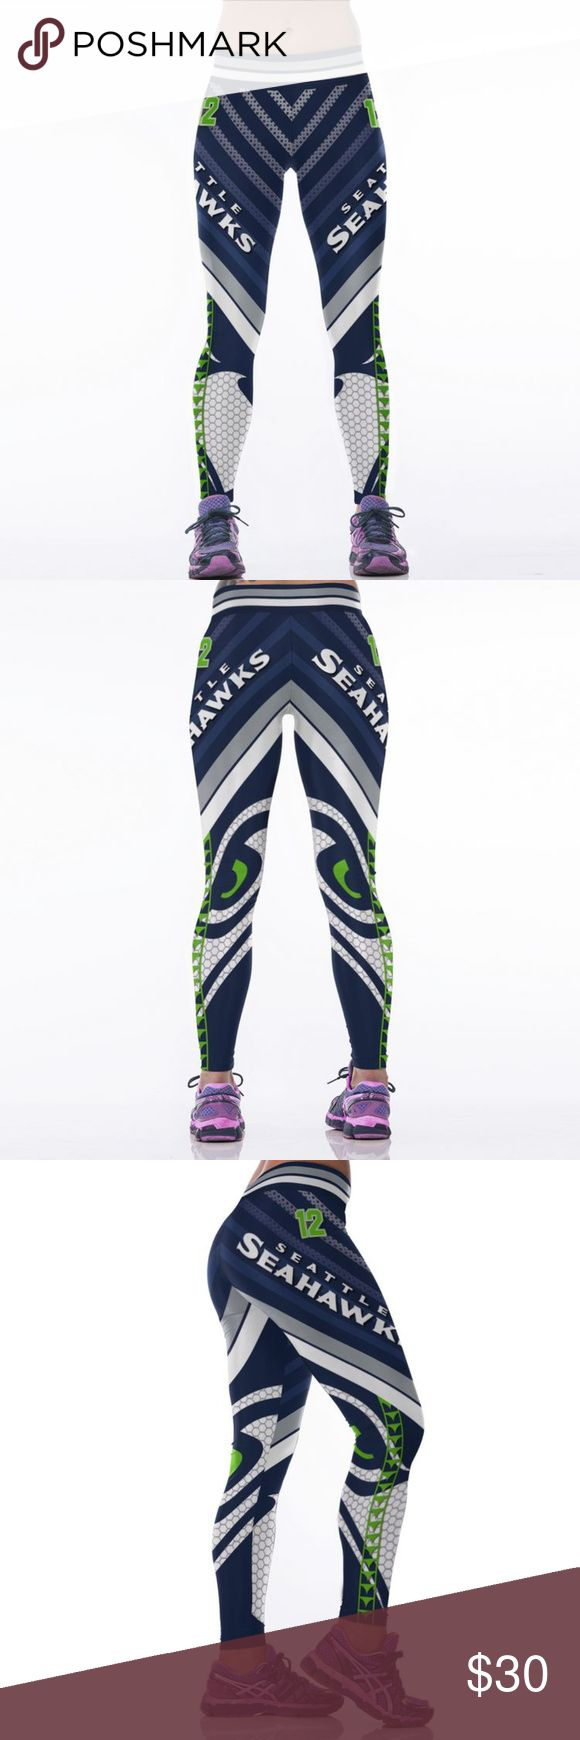 Seattle Seahawks NFL Leggings Root for your favorite team in these high quality NFL leggings! Perfect wardrobe addition while watching Sunday football games. The vivid colors and designs are sure to turn heads! Get a pair now while they last to show your team support every week as they inch their way to the glorious Super Bowl Material: Spandex/Polyester Measurements:  (Length / Waist / Hip) S/M: 36 / 27.5-37 / 33-41.5 L/XL: 36.5 / 30–39.5 / 35.5-44 Price FIRM unless bundled FAST Shipping…